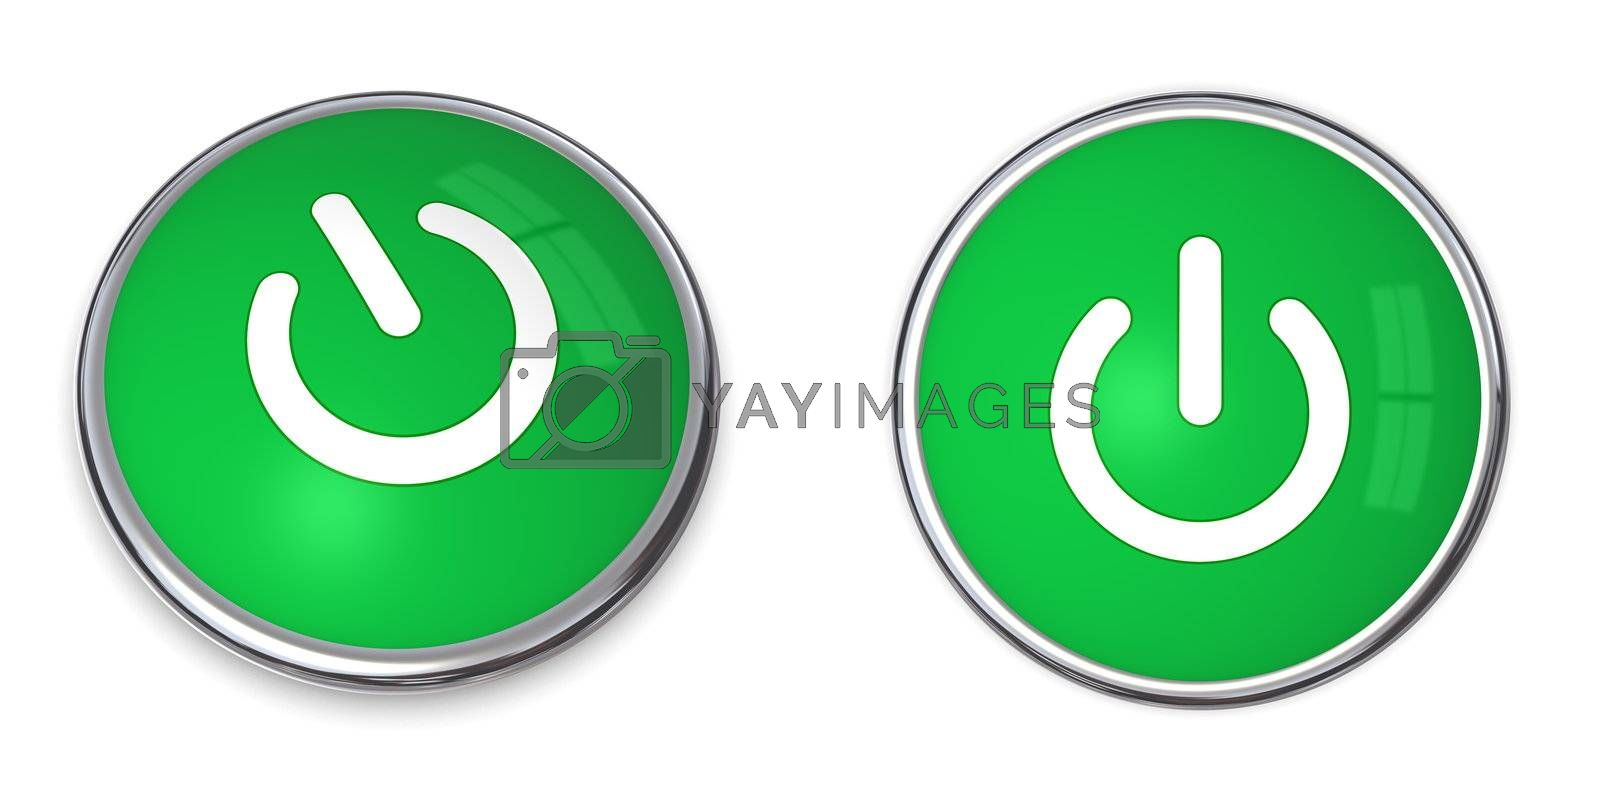 Royalty free image of Green Power Button by PixBox